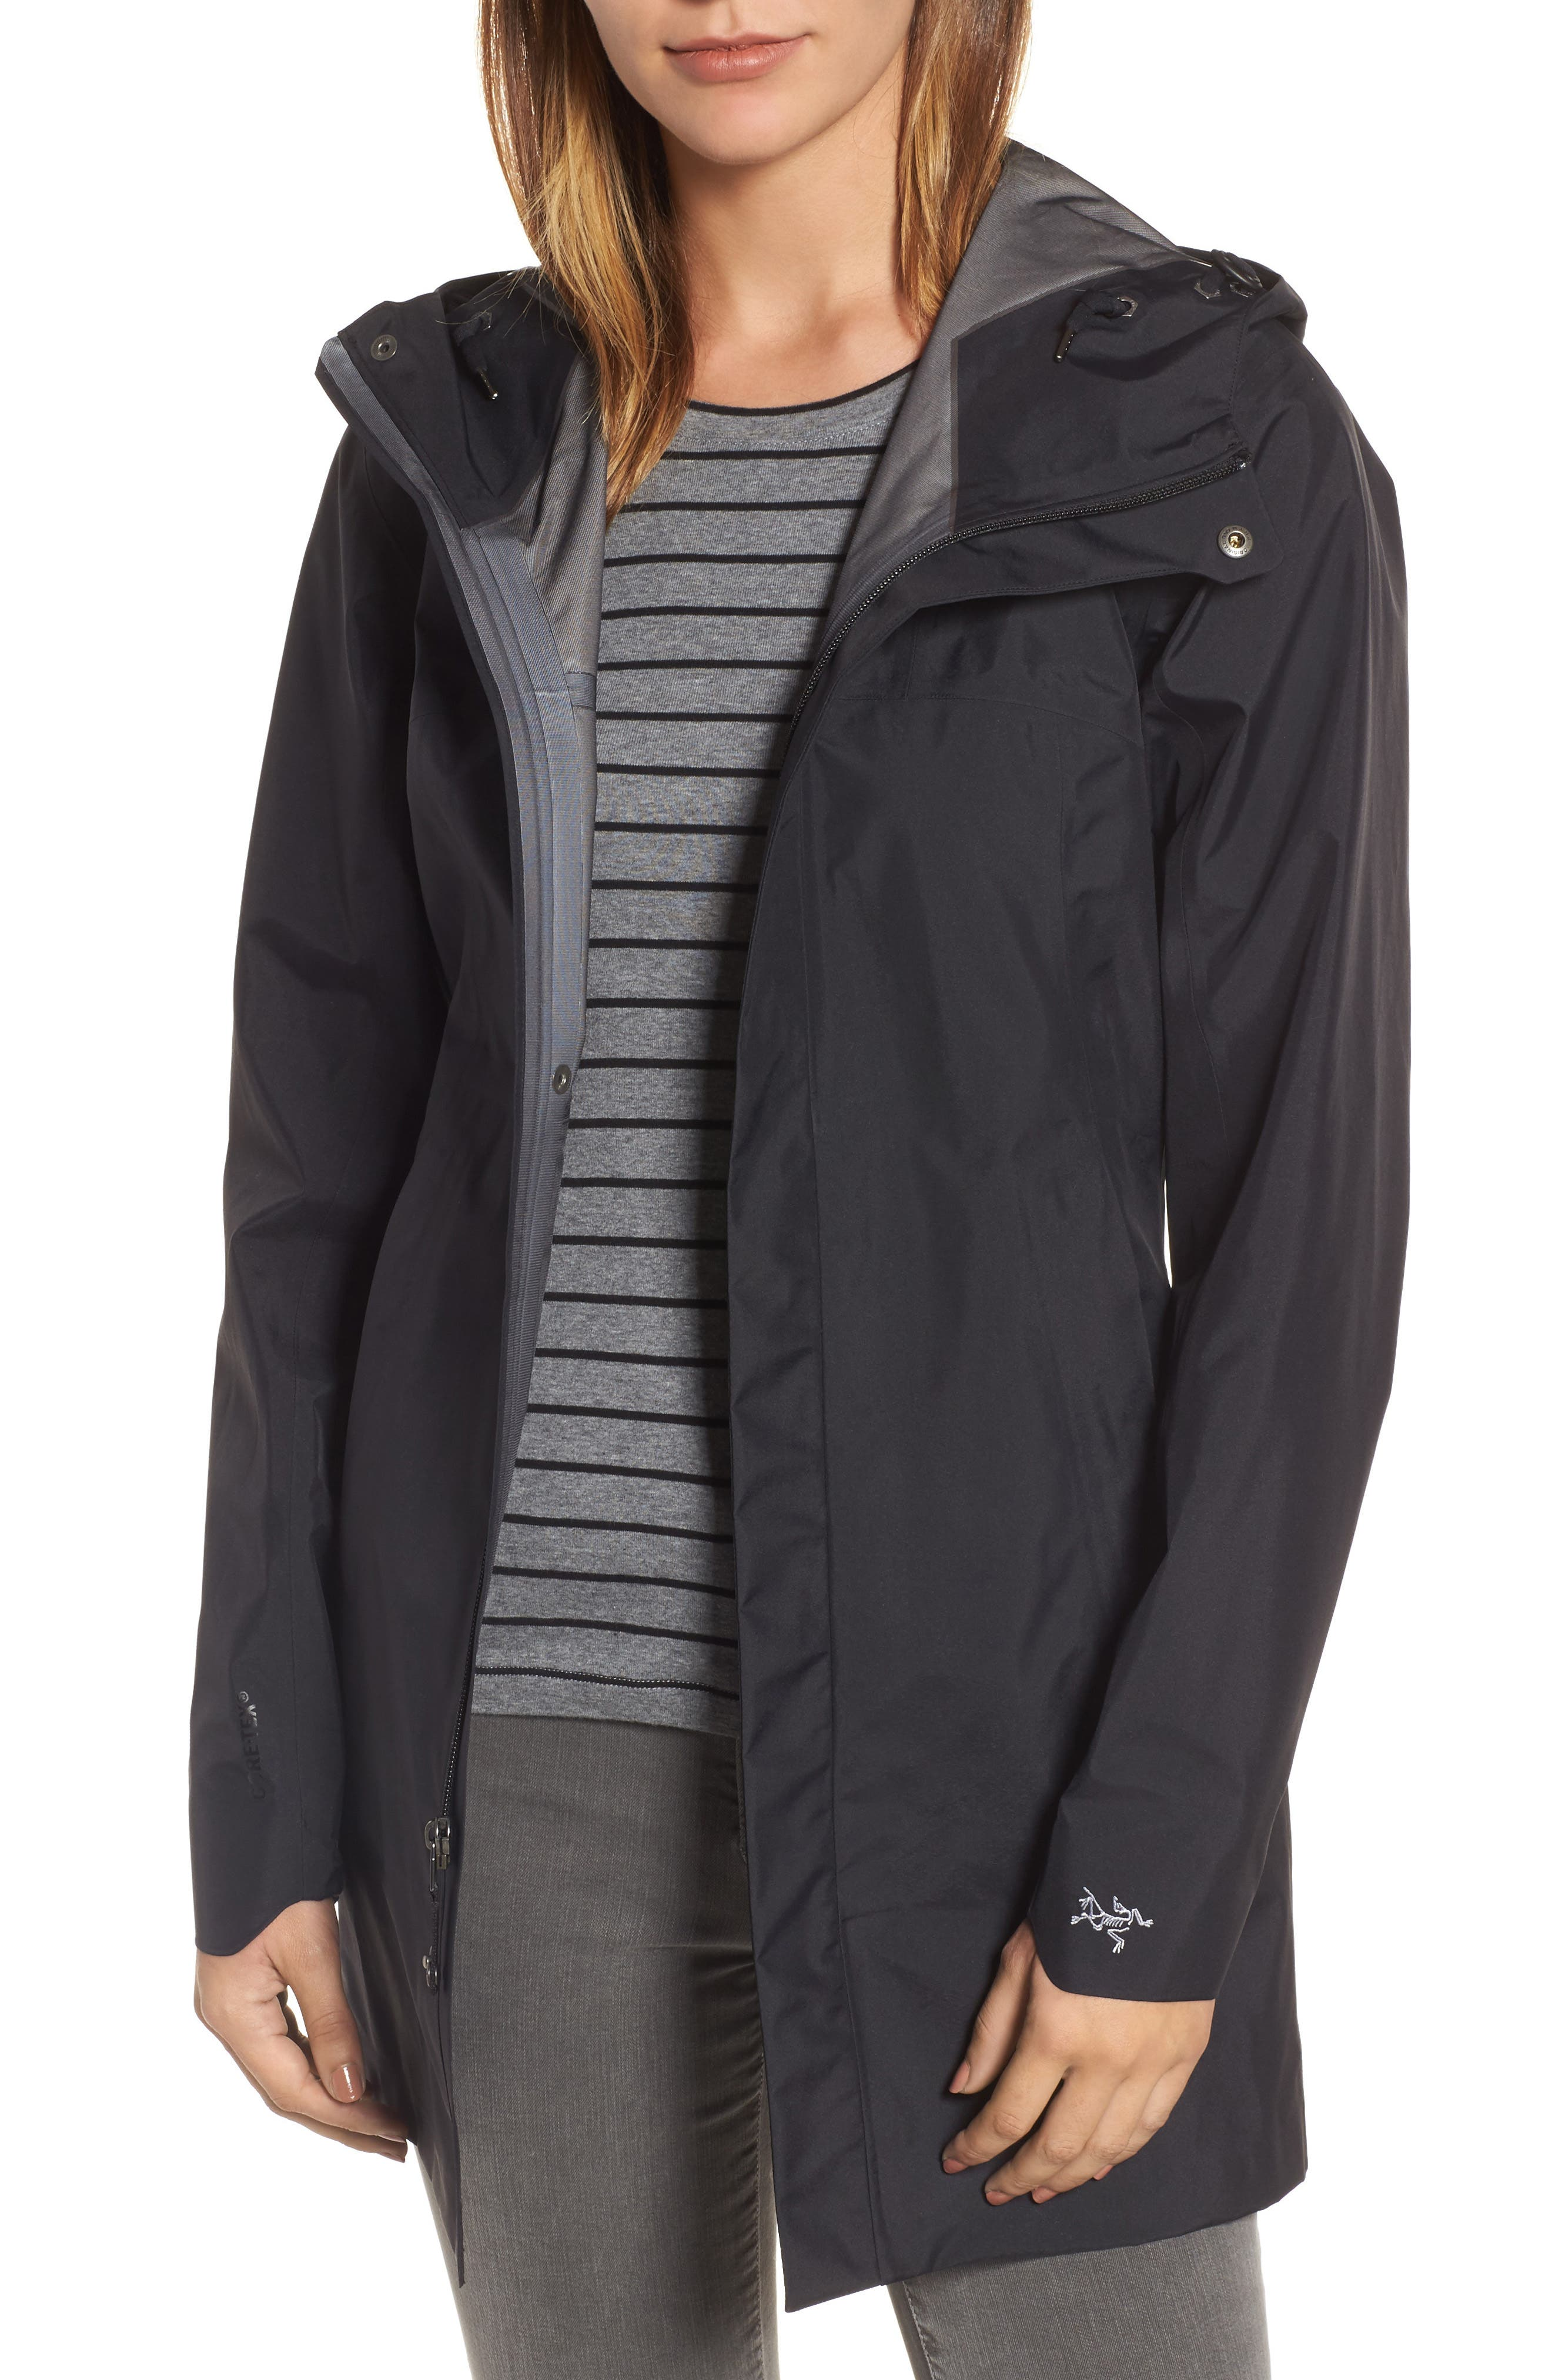 'Codetta' Waterproof Relaxed Fit Gore-Tex<sup>®</sup> 3L Rain Jacket,                             Main thumbnail 1, color,                             001